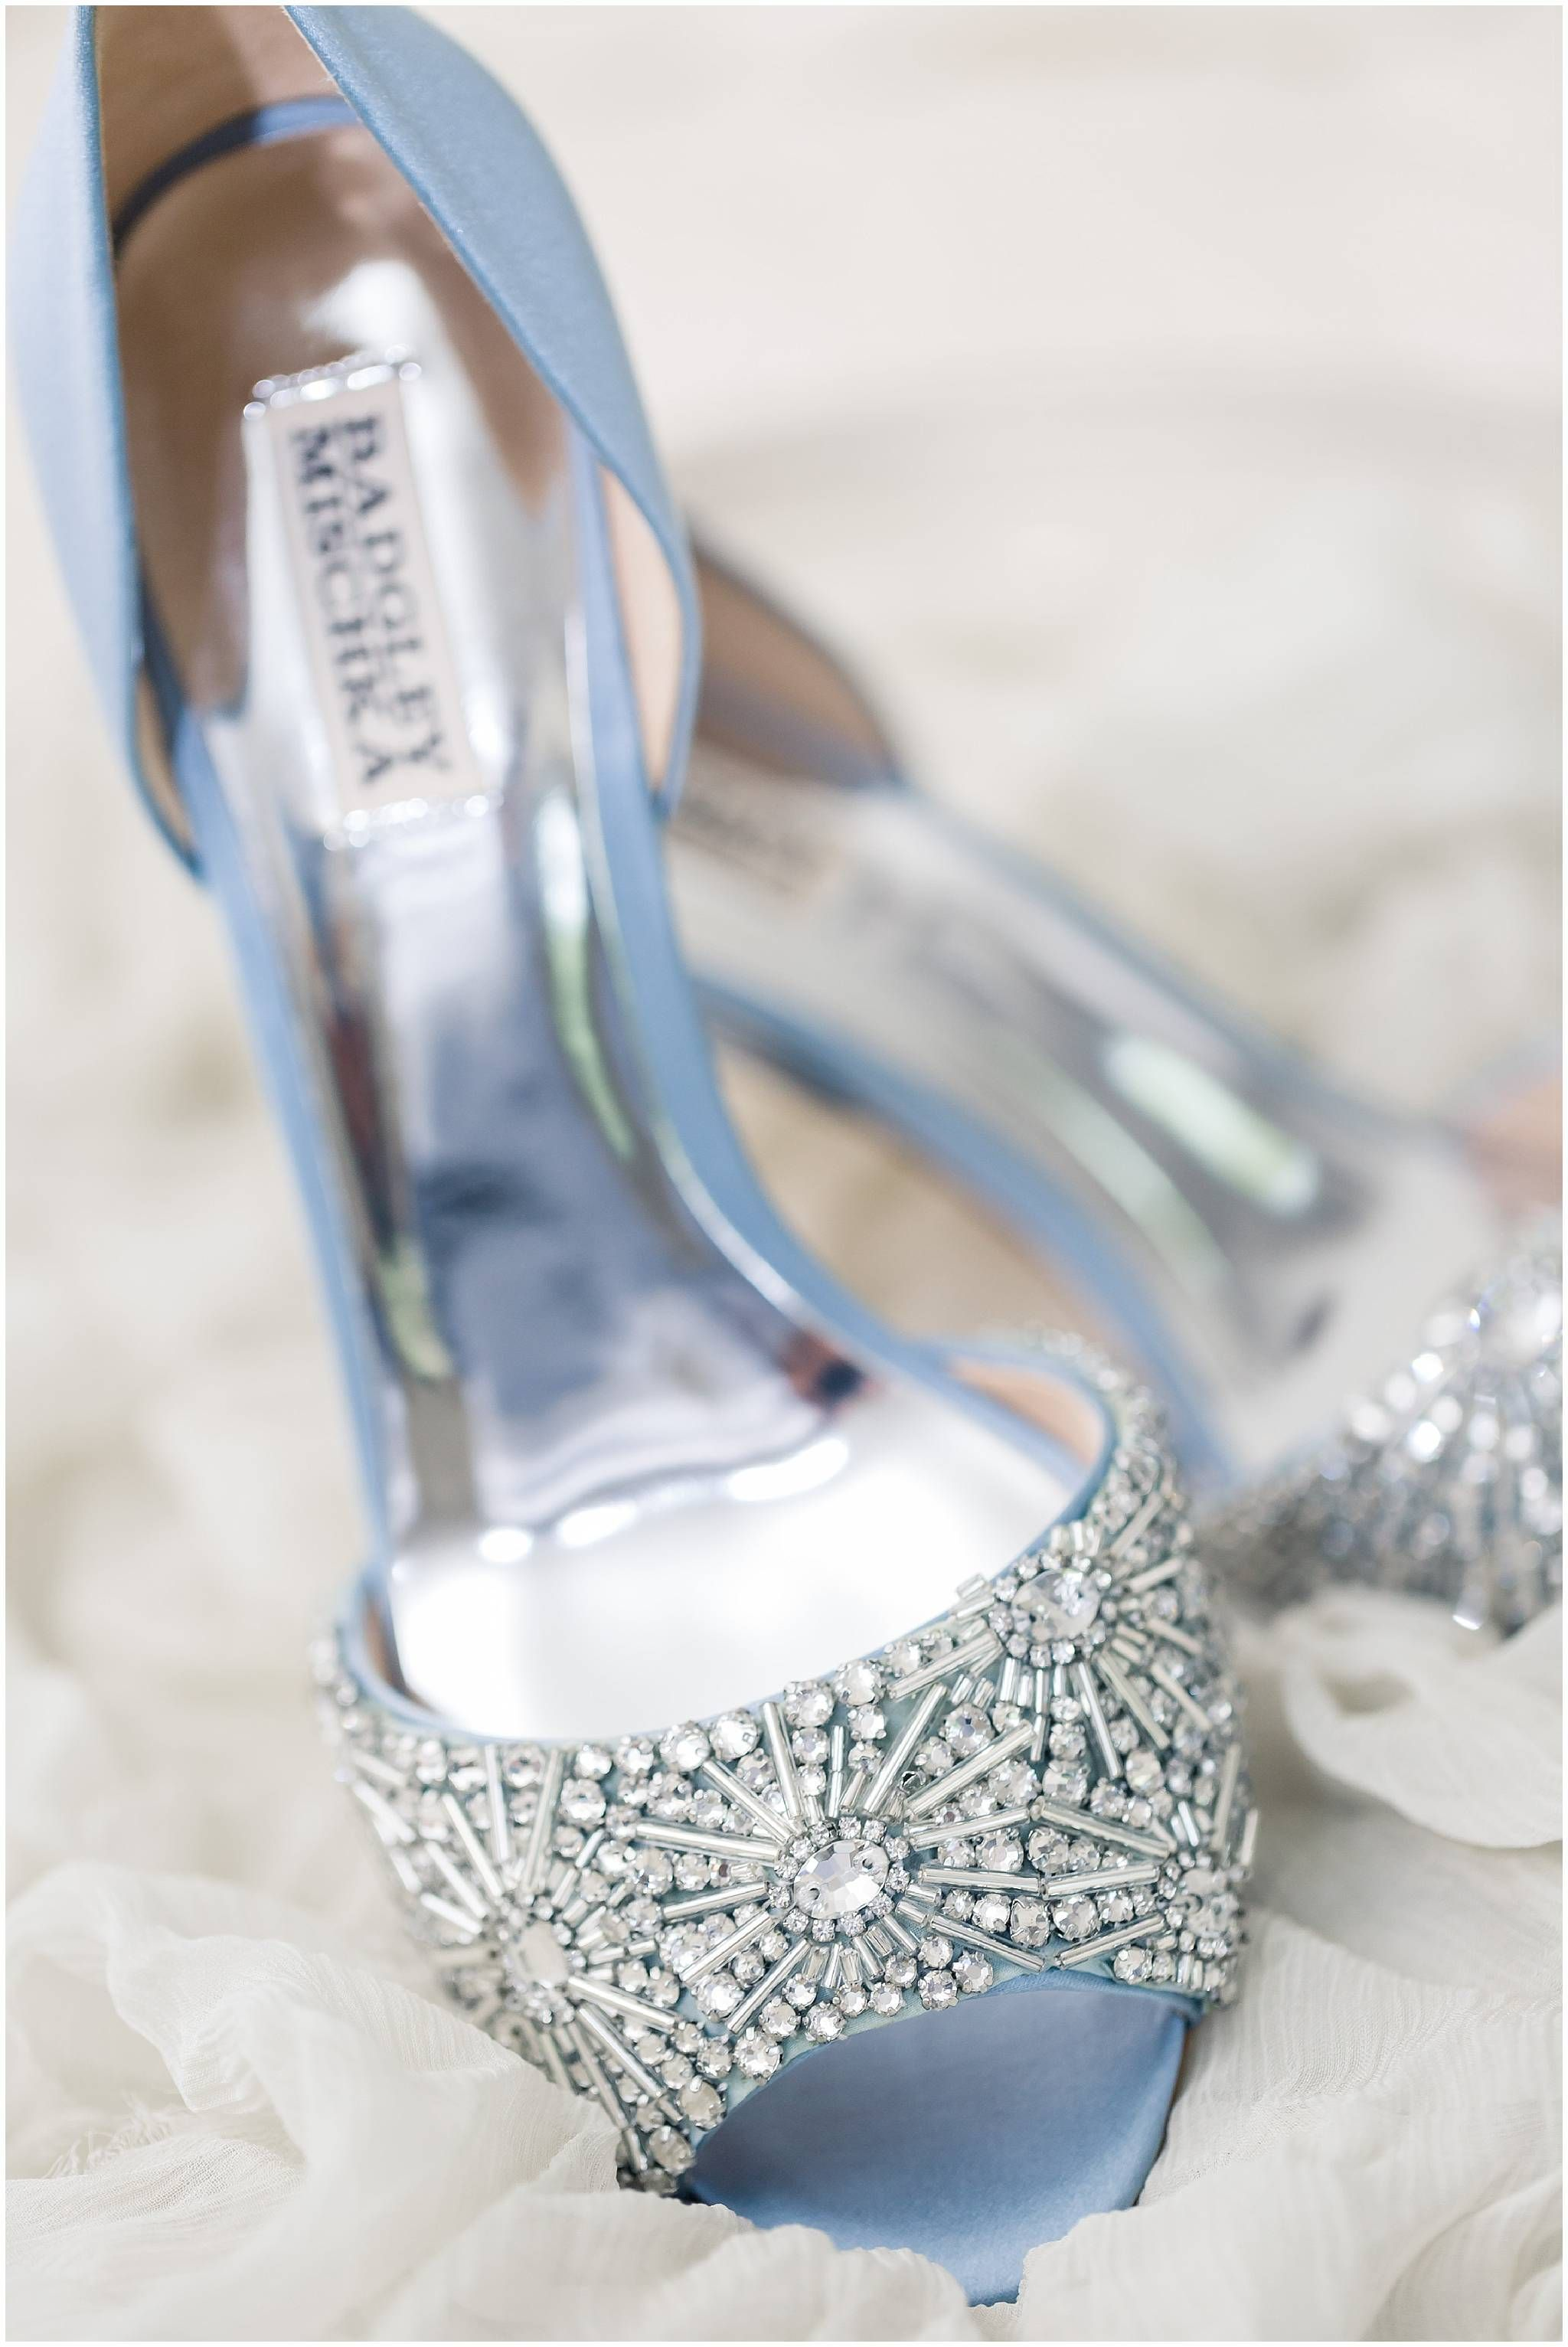 Blue Badgley Mischka Wedding Shoes Bride Shoes Blue Heels Sparkle Canon 100mm Macro Photographing The Rings White Wedding Shoes Wedding Shoes Bride Shoes